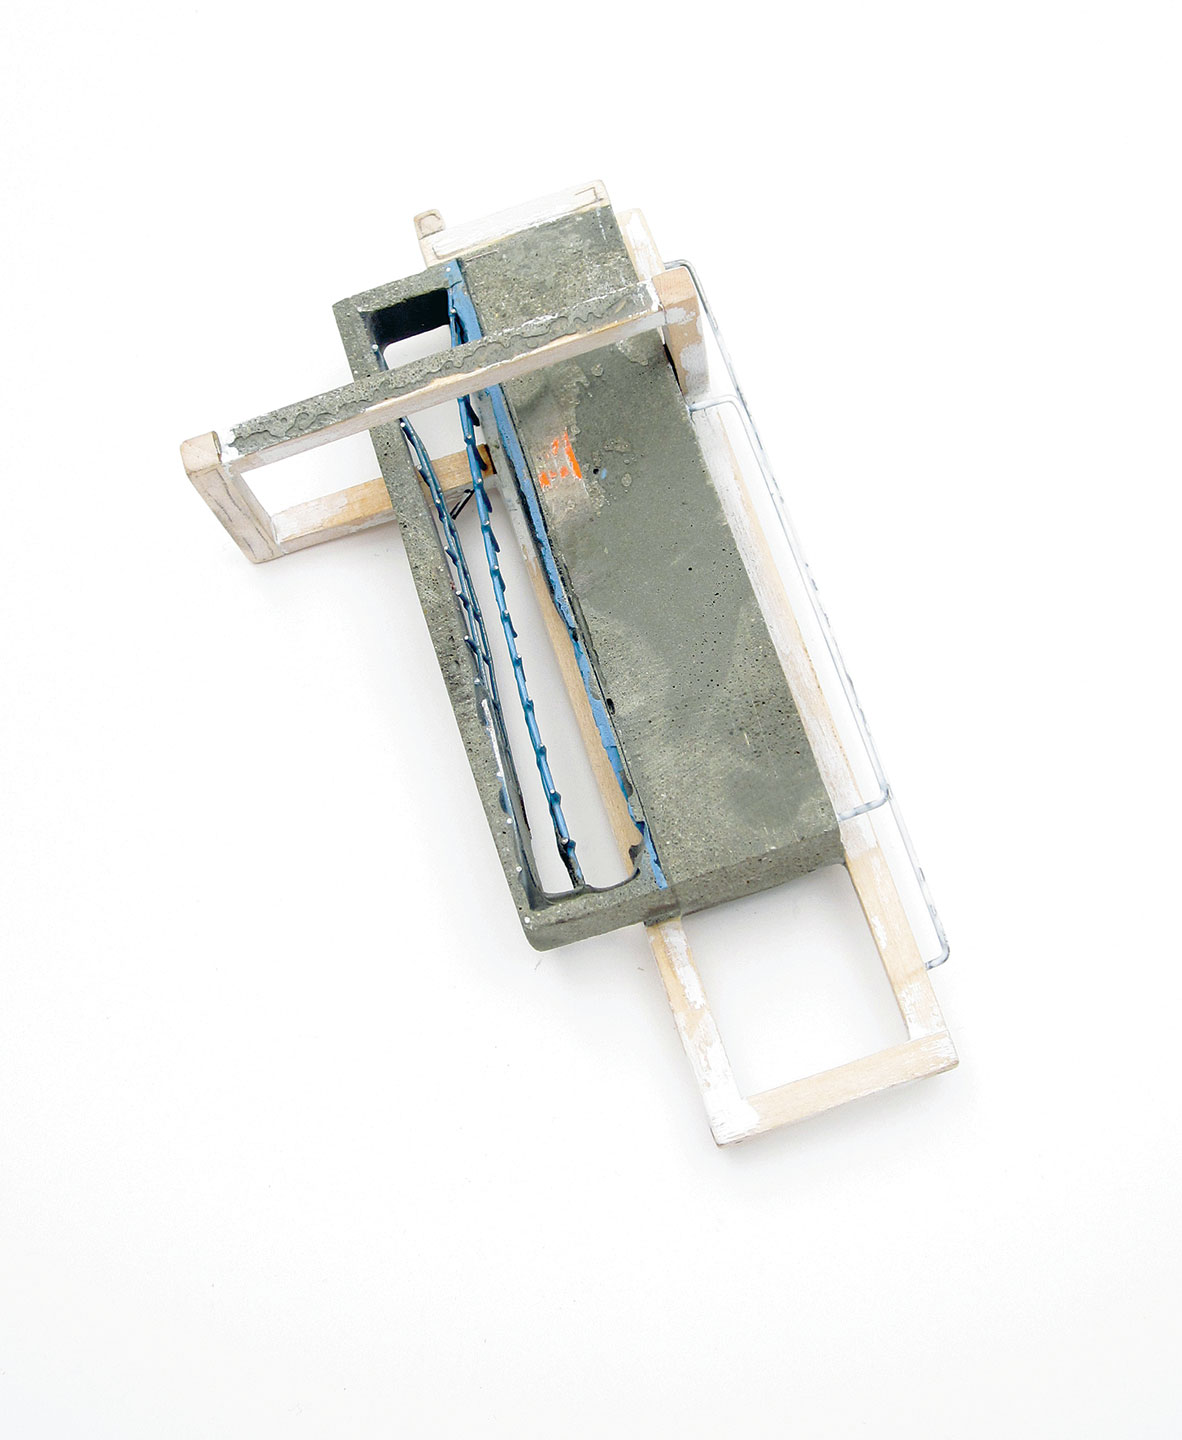 RECONSTRUCTED: FRAMED BROOCH of cement, sterling silver, resin, steel, pigment, thread, duct tape, powder coat, wood, and nickel silver, 10.2 x 7.6 x 5.1 centimeters, 2013.  Photograph by Seth Papac.